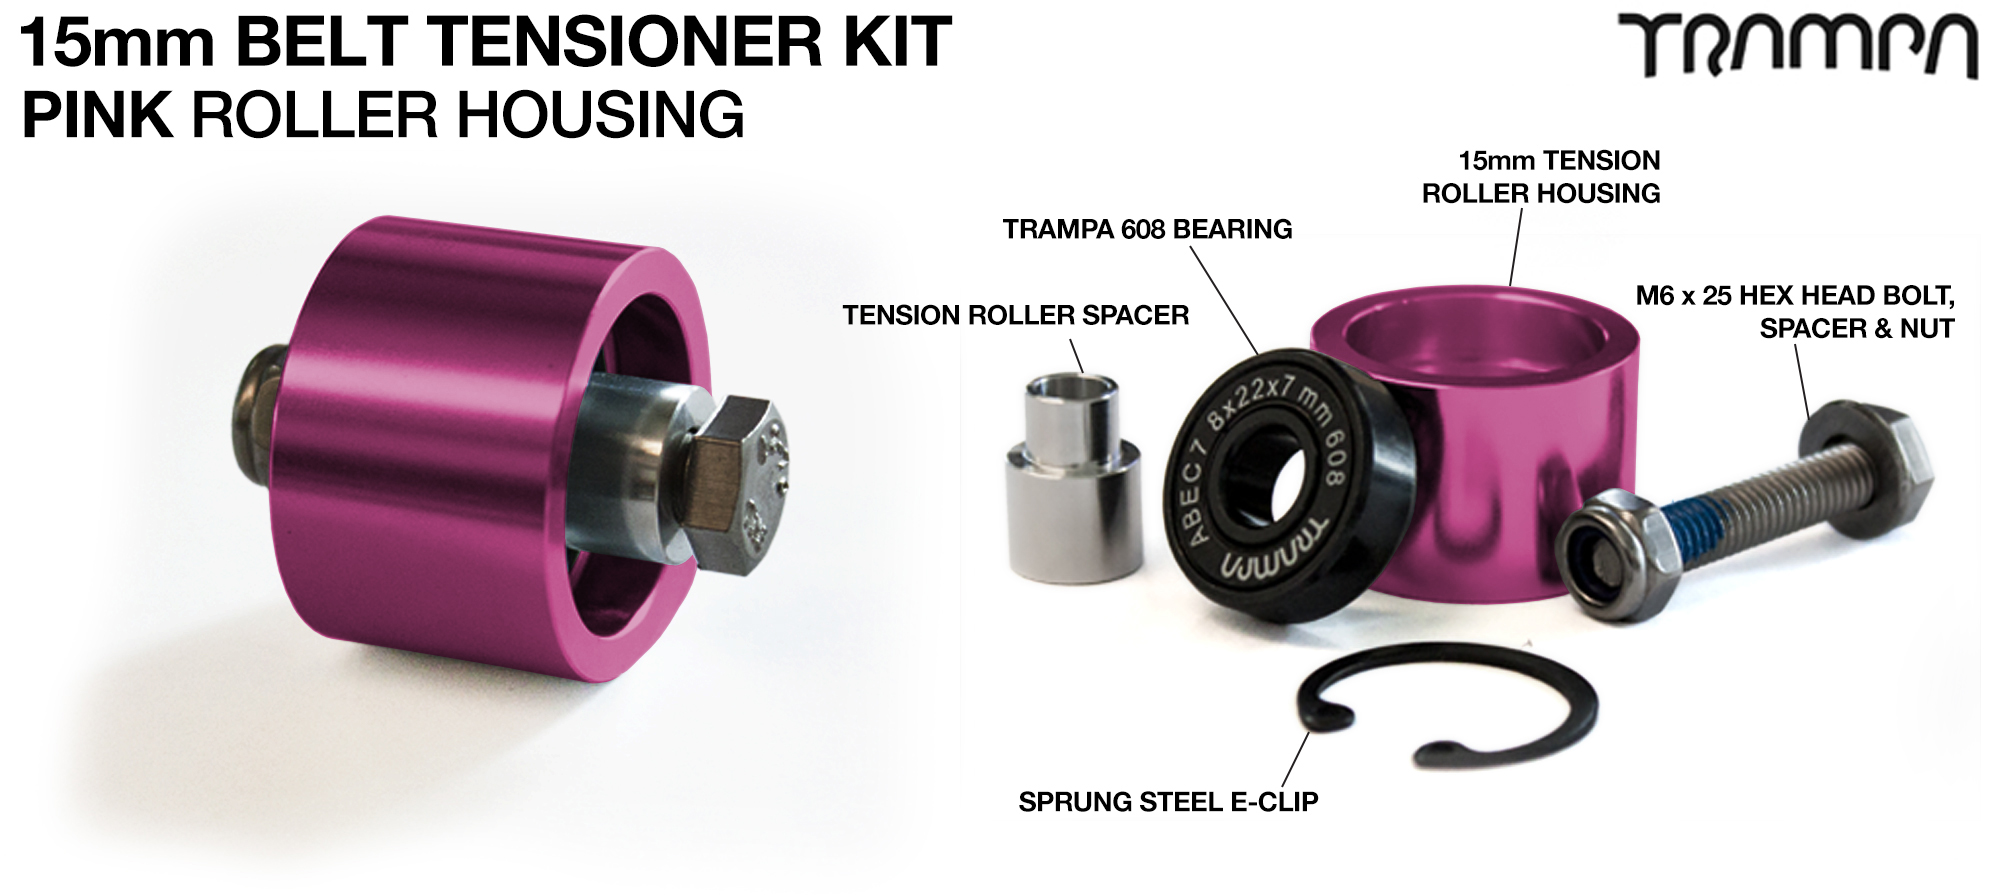 15mm Belt Tensioner - PINK